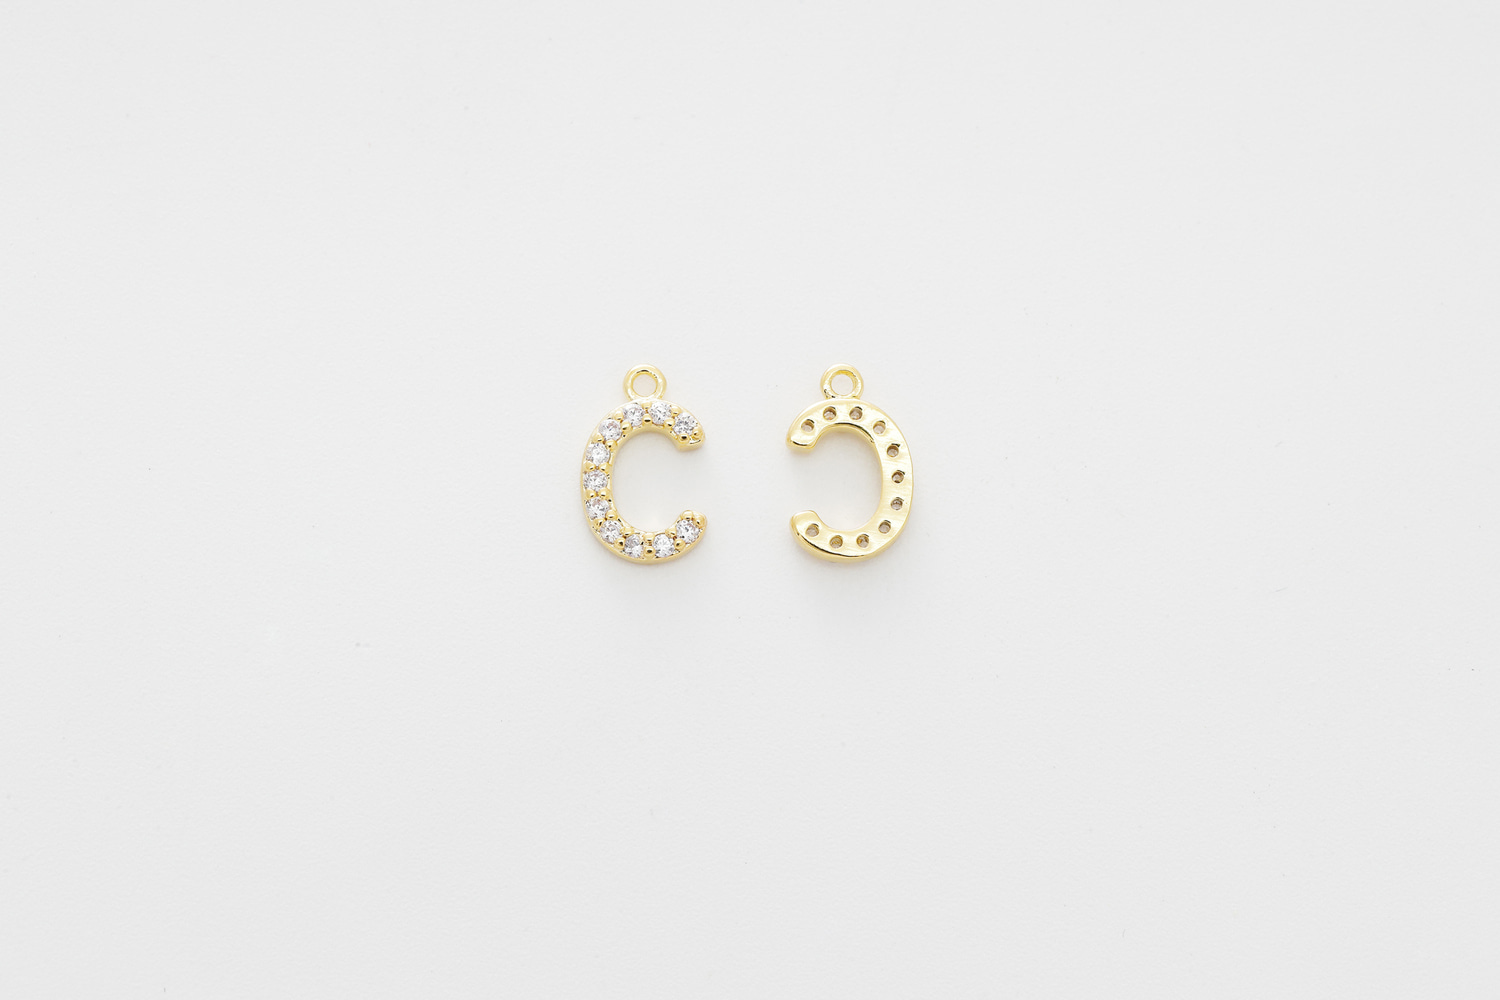 [AC-G20] Cubic capital letter charm C, Brass, Cubic zirconia, Nickel free, Jewelry making supplies, Alphabet charm, Initial charm, 1 piece